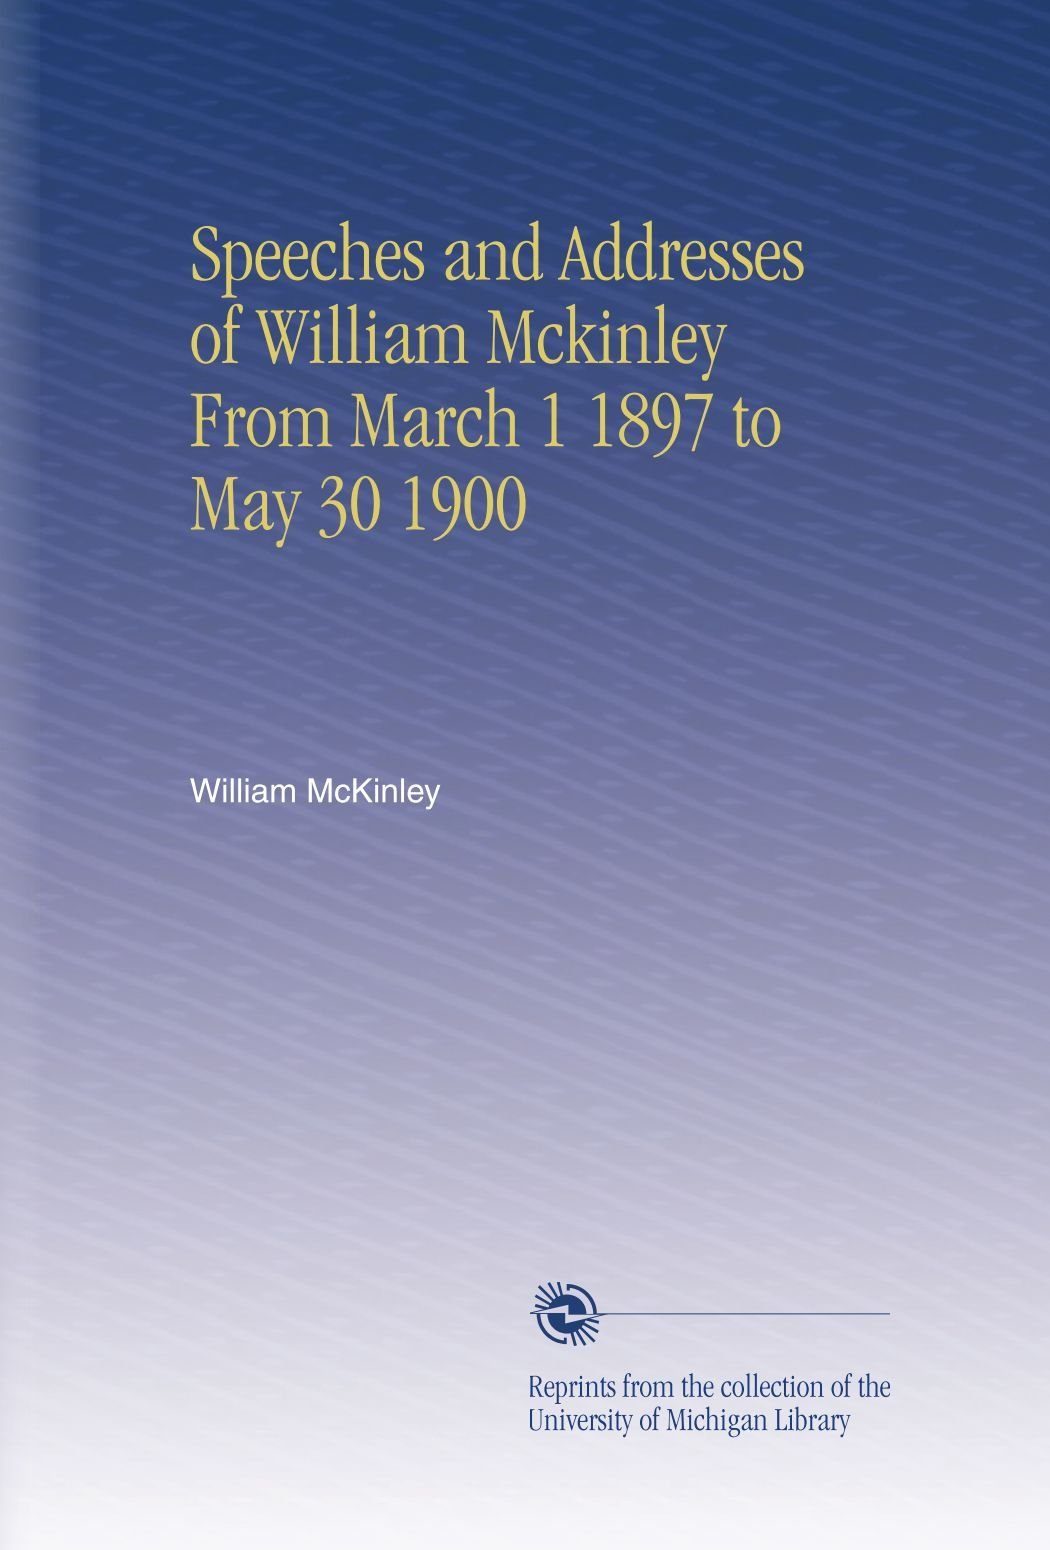 Speeches and Addresses of William Mckinley From March 1 1897 to May 30 1900 PDF